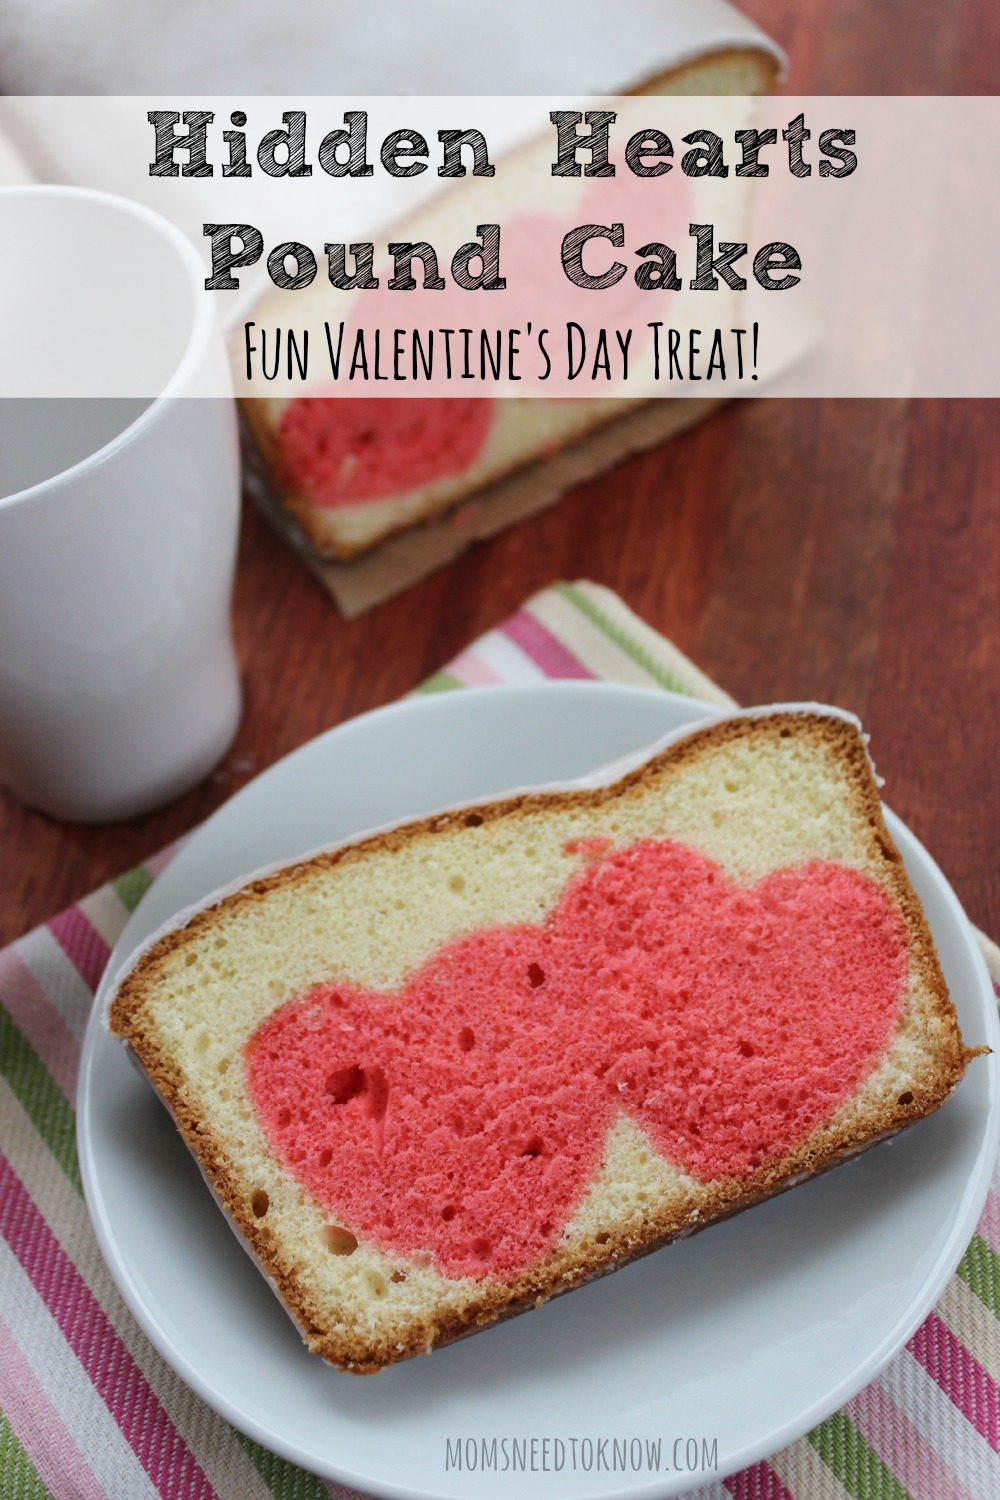 Need a fun and easy Valentines Day recipe? Try this hidden hearts pound cake with a delicious glaze. Your friends and family will wonder how you did it!